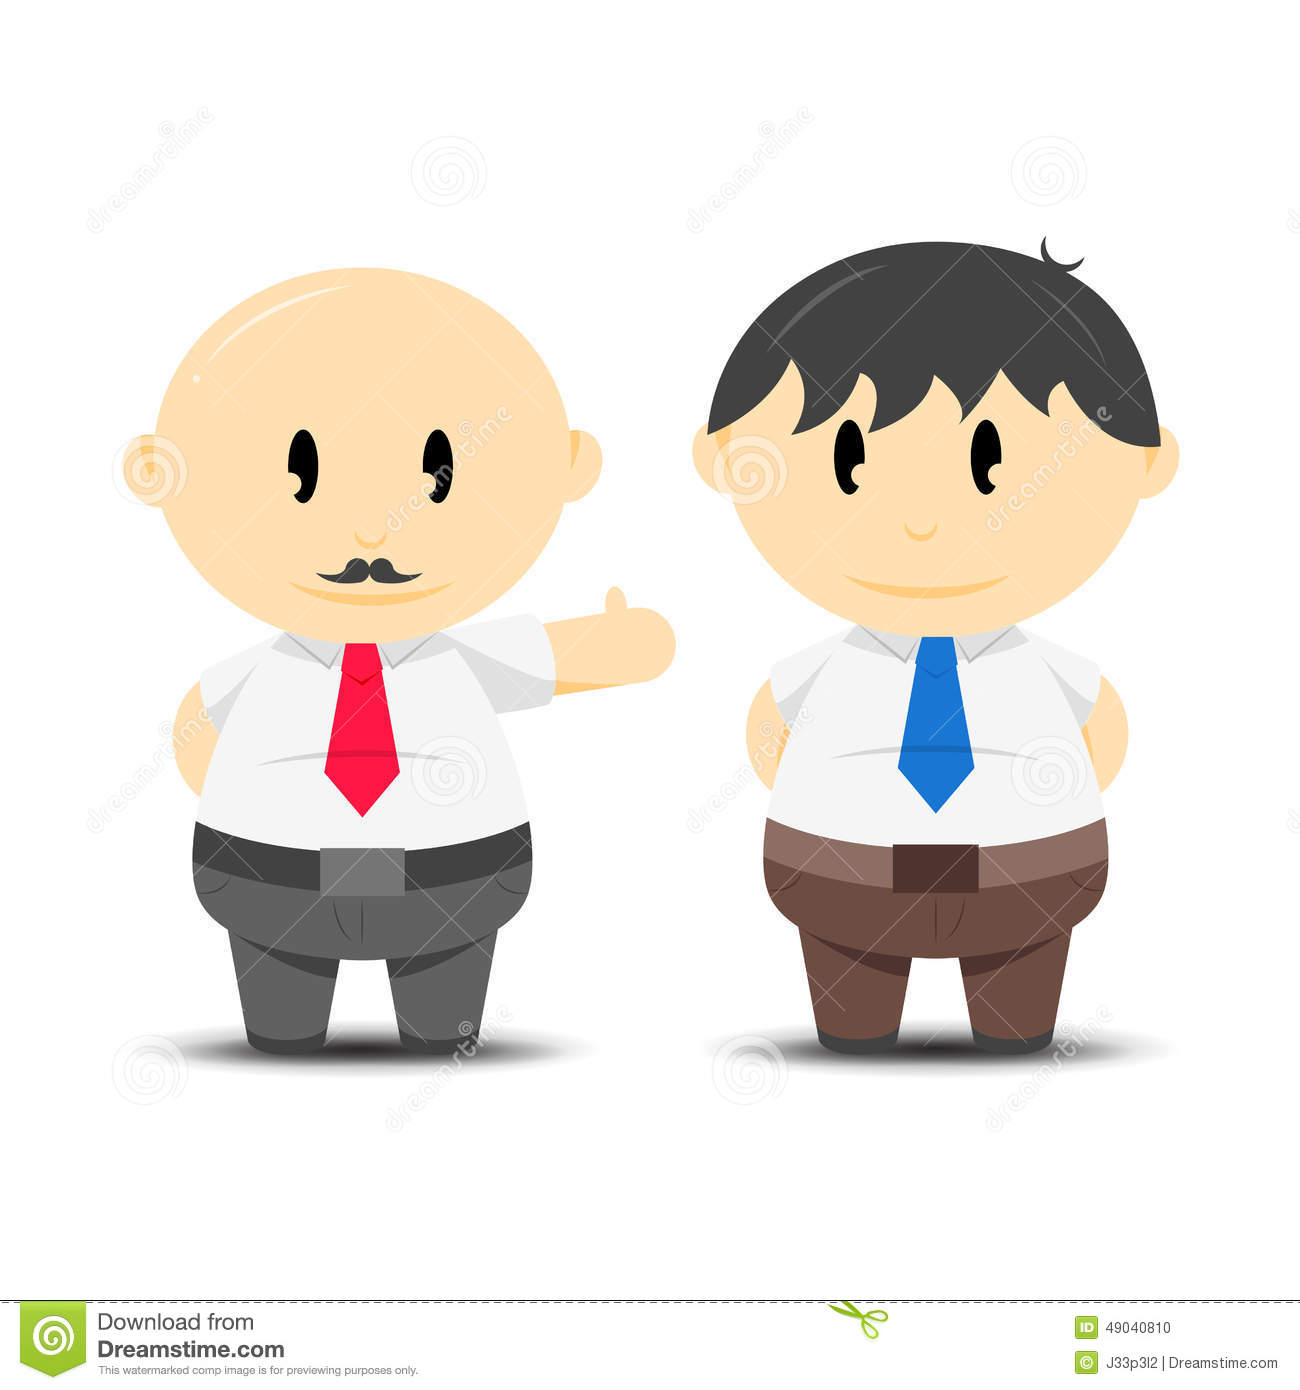 Employer and employee stock vector. Illustration of ...  Employer and em...